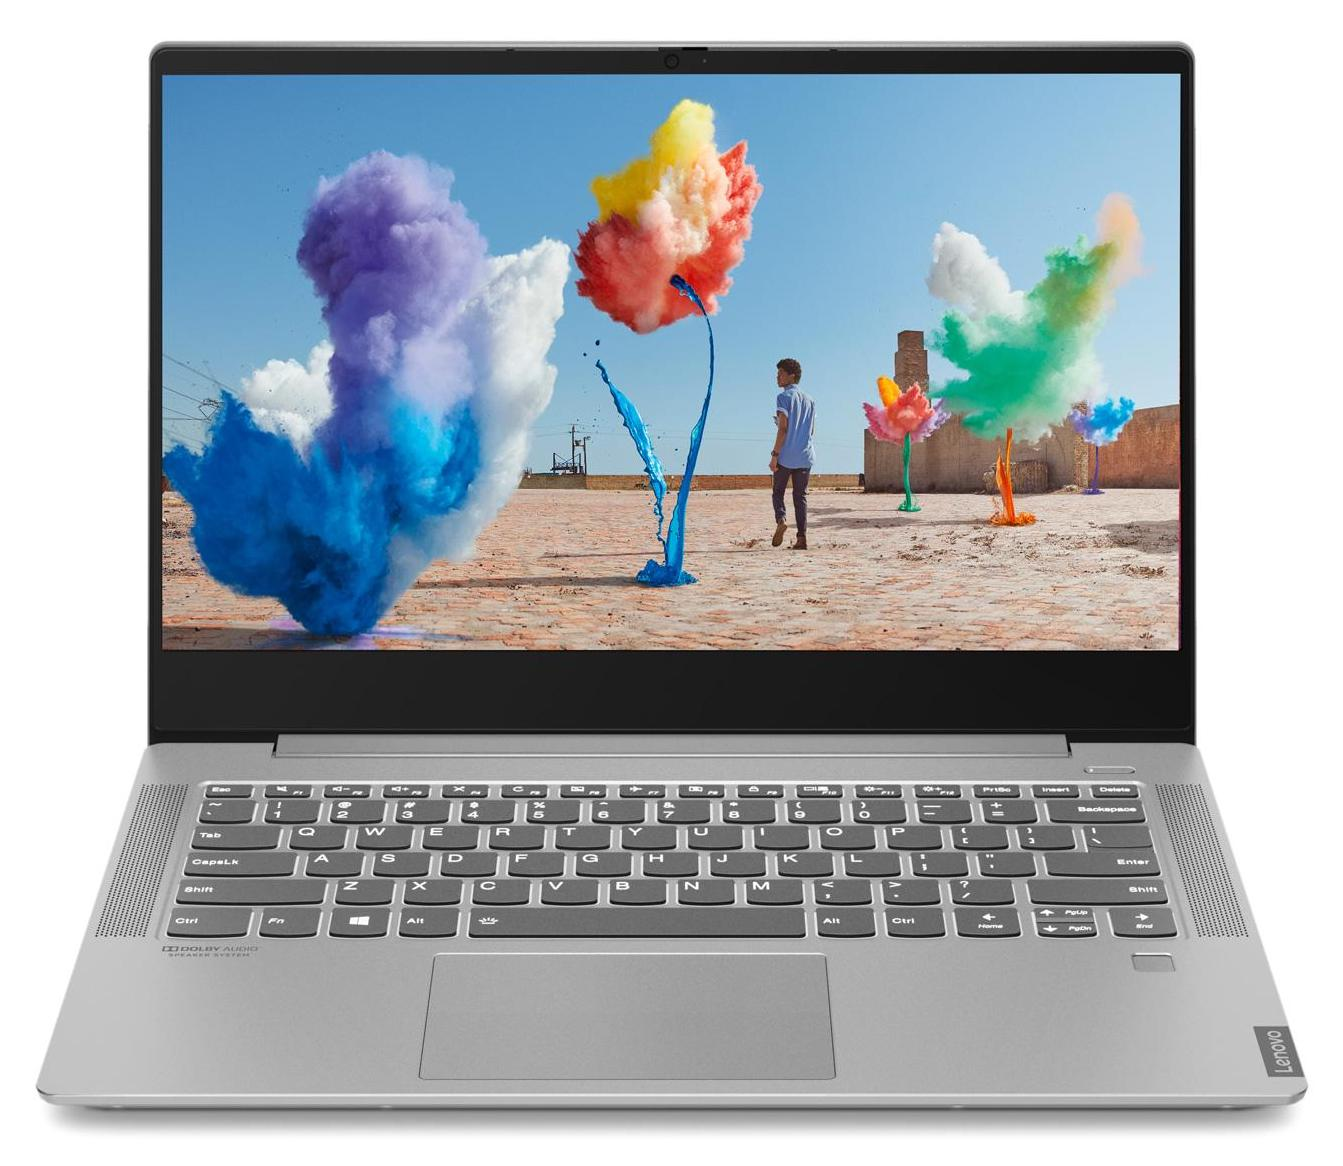 Lenovo IdeaPad S540-14IWL, ultrabook 14 pouces rapide (629€)